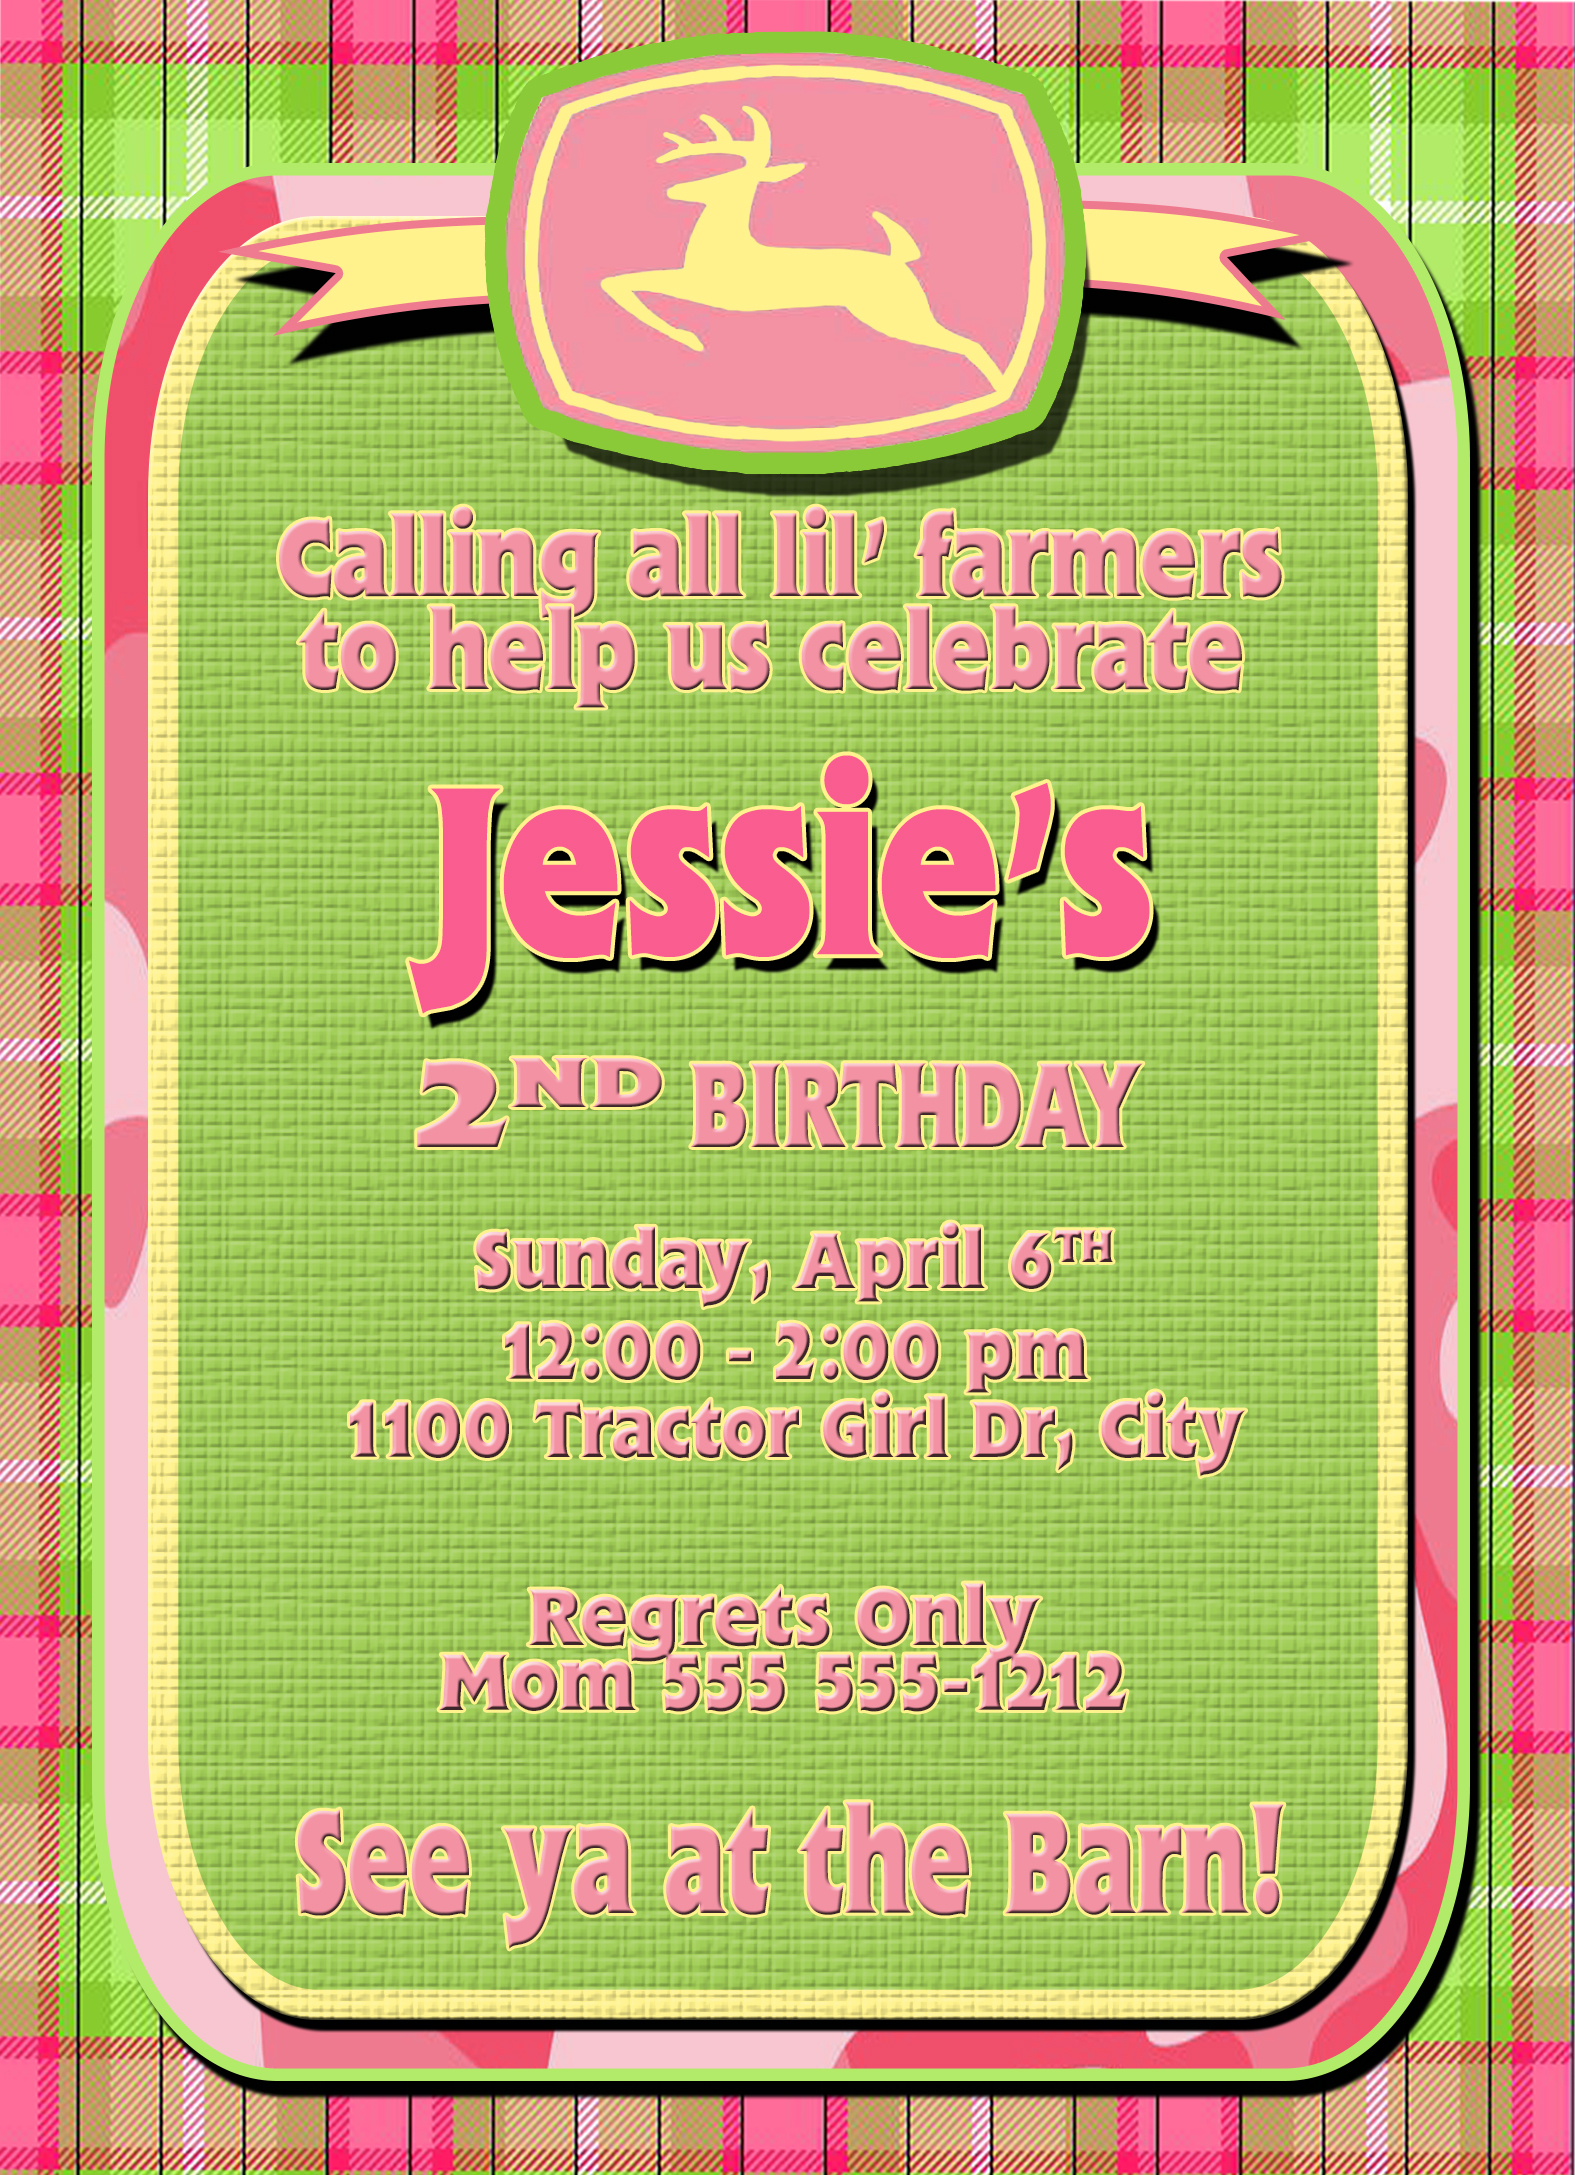 John Deere Tractor Girl Personalized Birthday Invitation 2 Sided Card Party